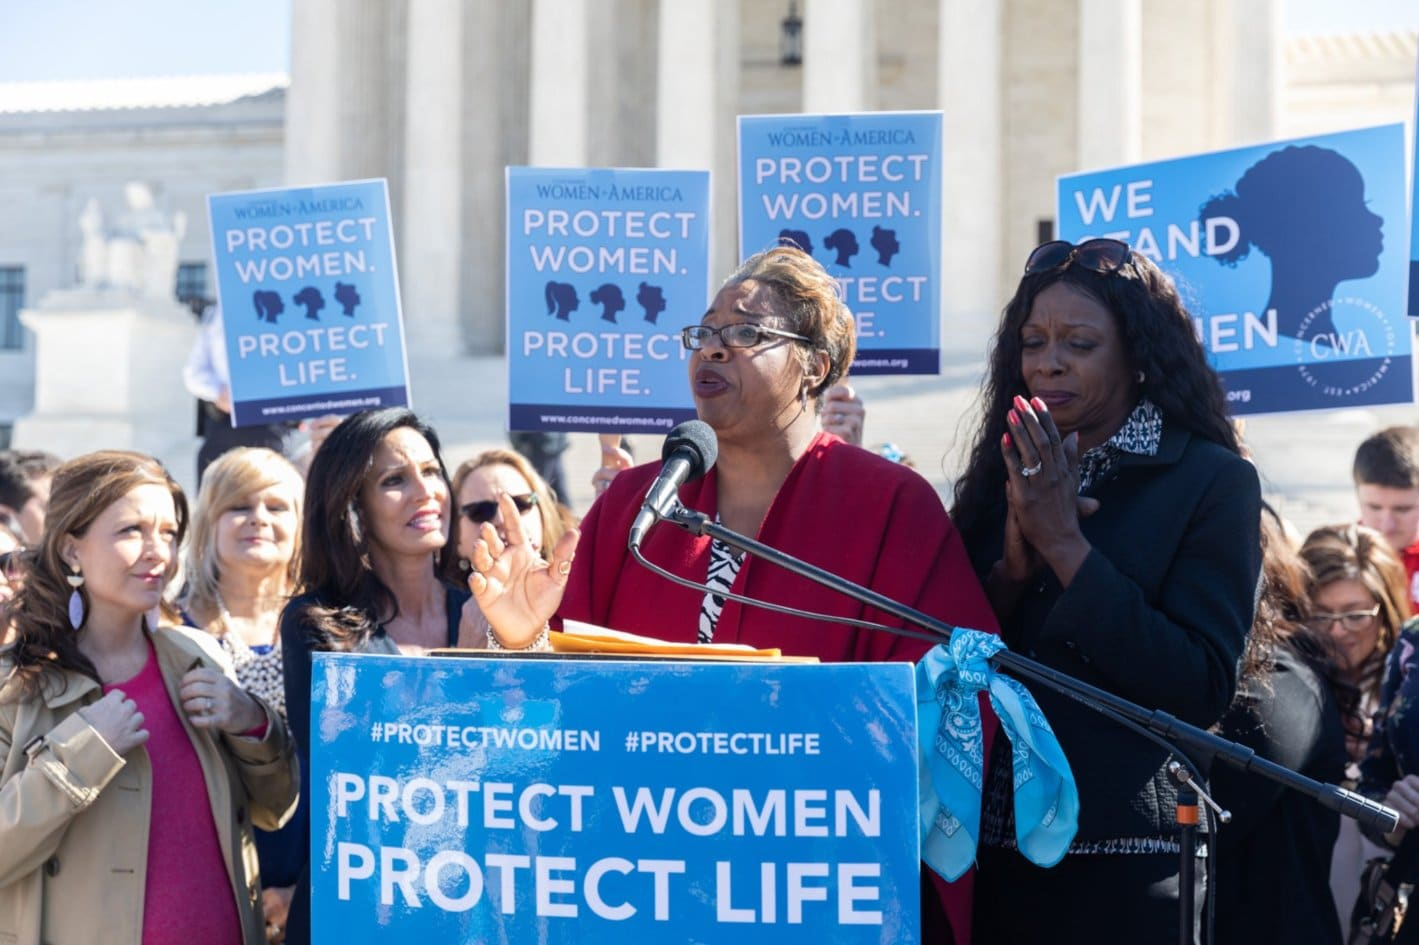 CWA member Sancha Smith speaking at Protect Women Protect Life rally at the Supreme Court